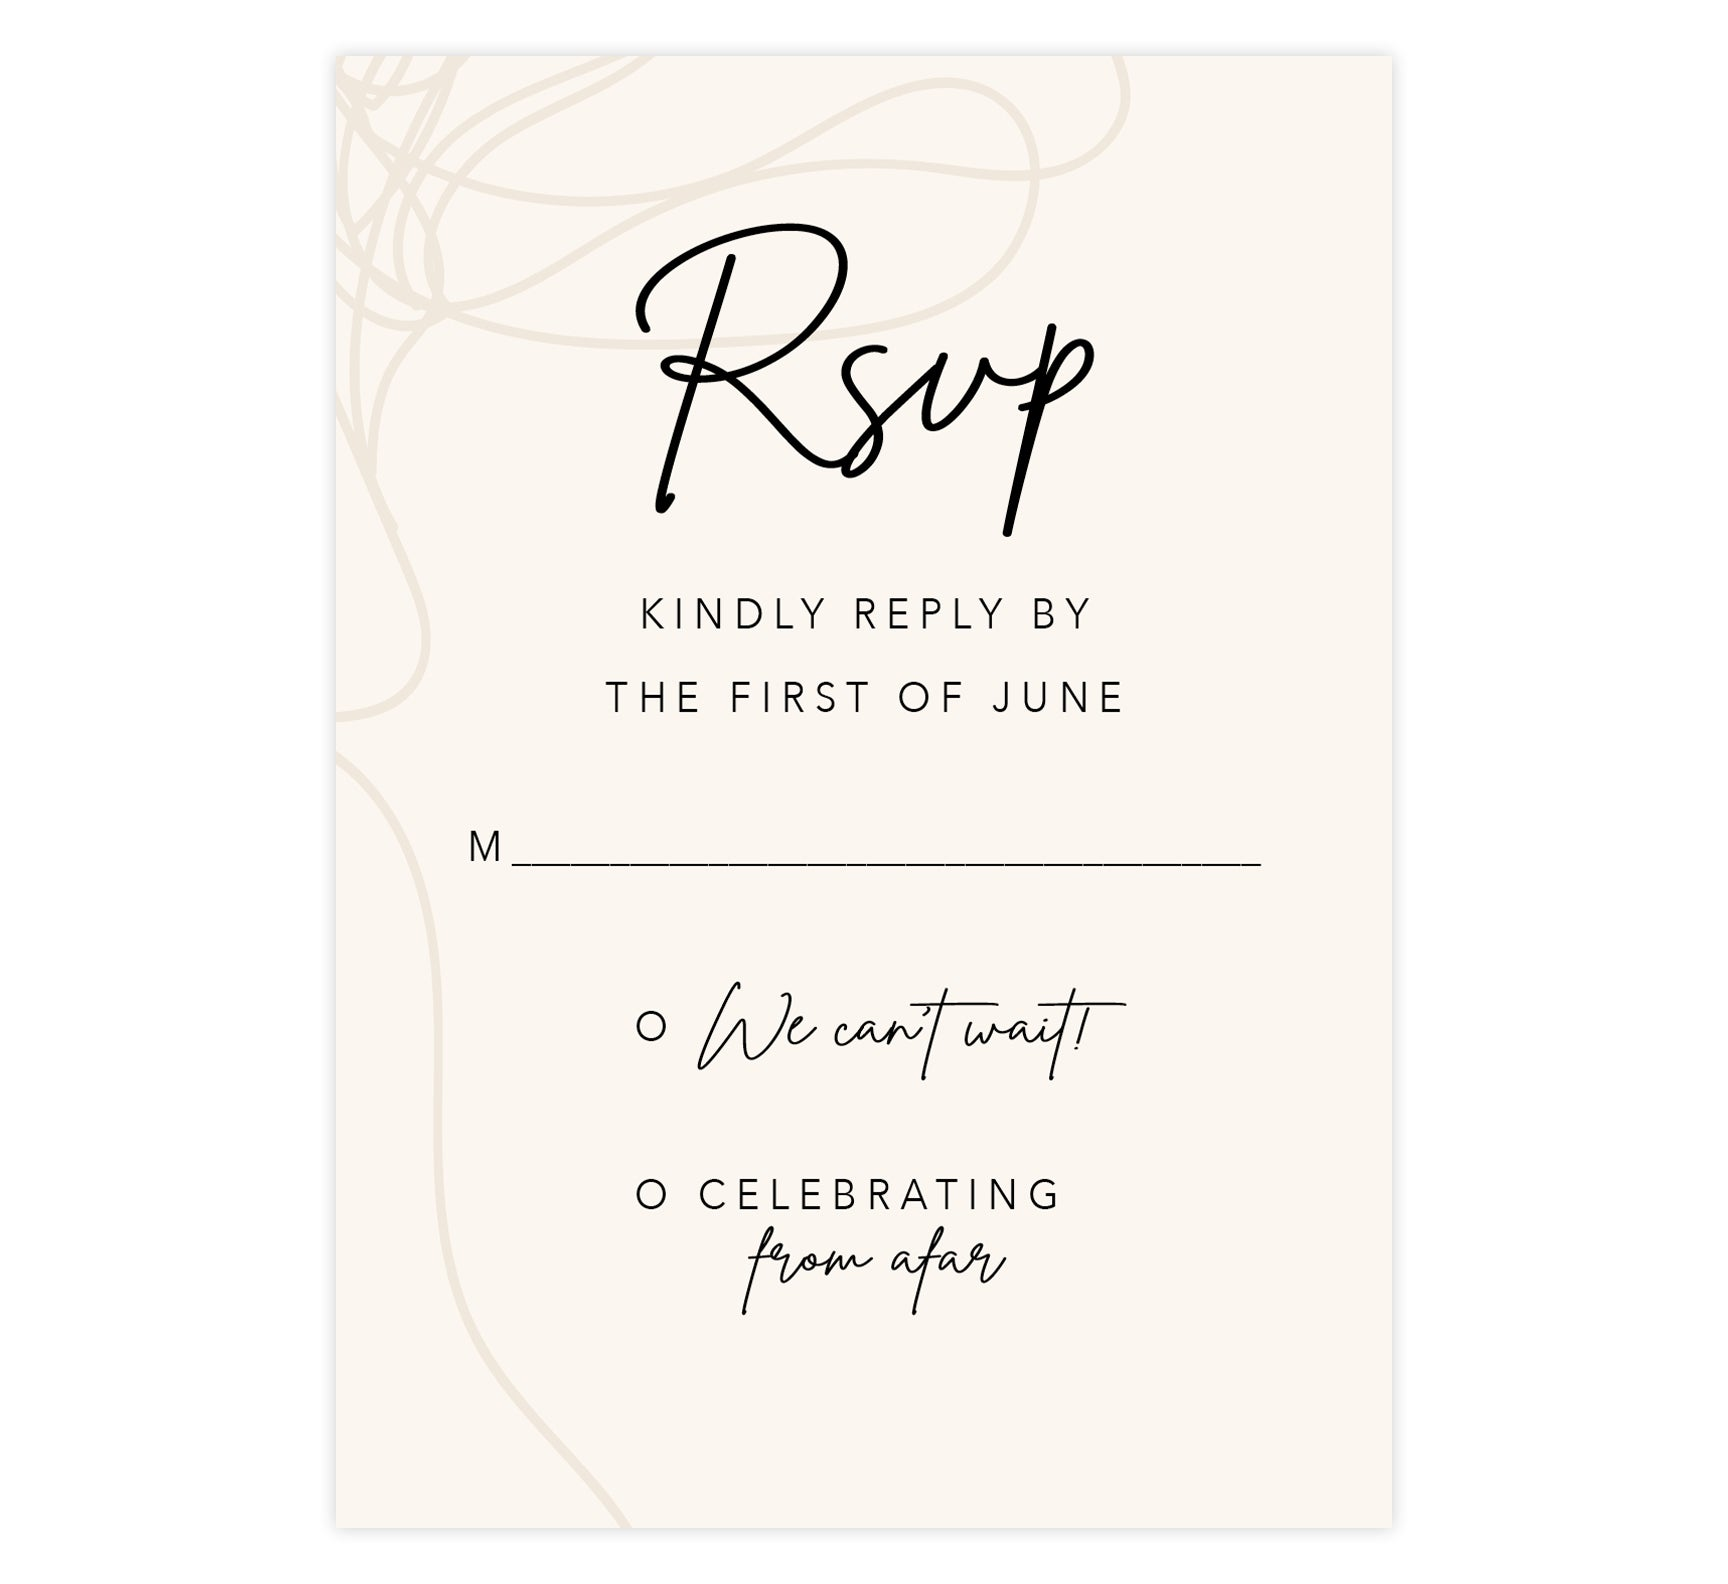 Modern Handwriting wedding response card; creme background with tan drawn design on the left edge and black writing